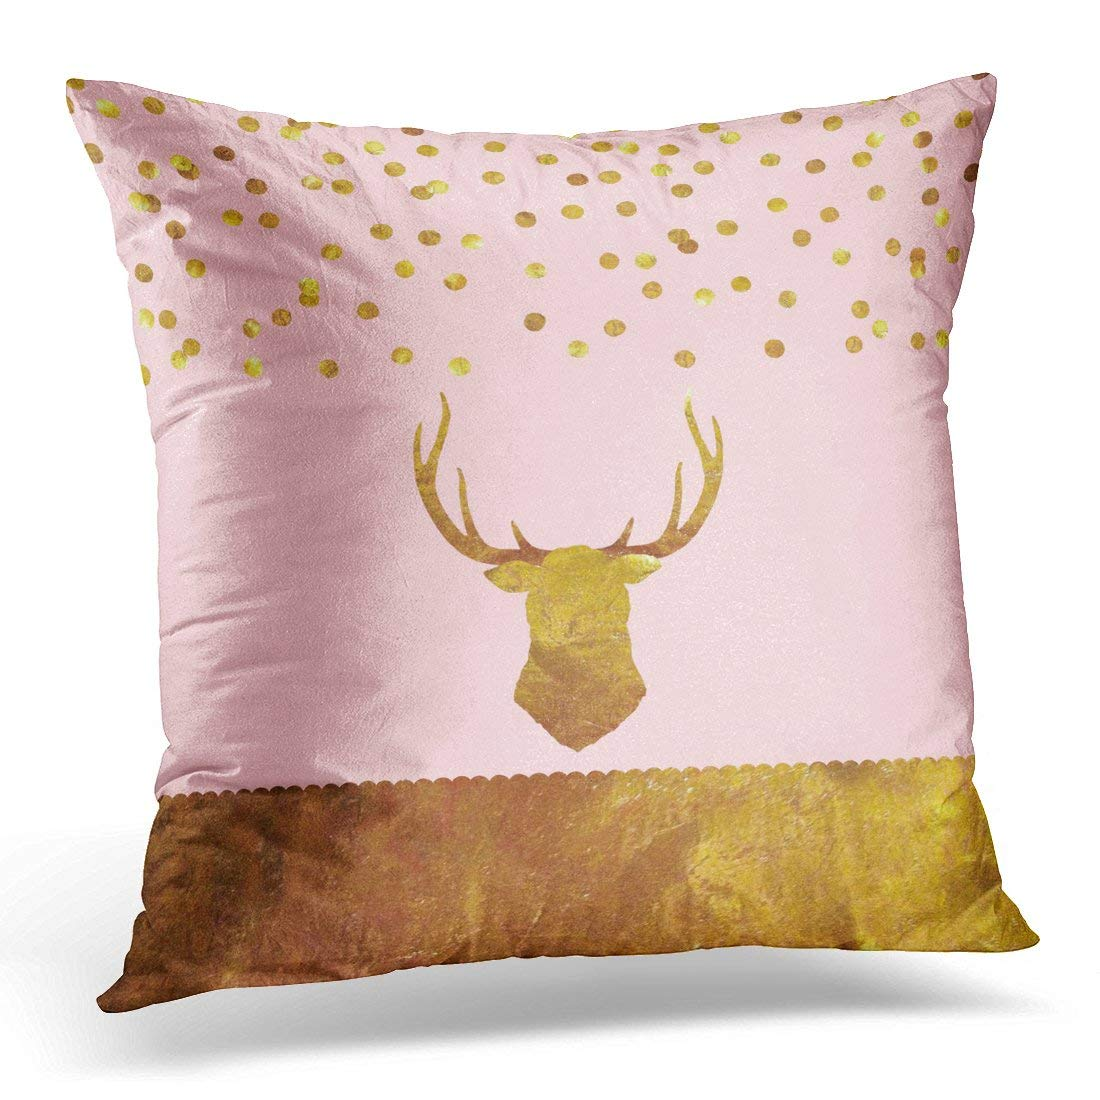 USART Pink Rose Gold Foil Confetti Stag Christmas Pillow Case Pillow Cover 20x20 inch